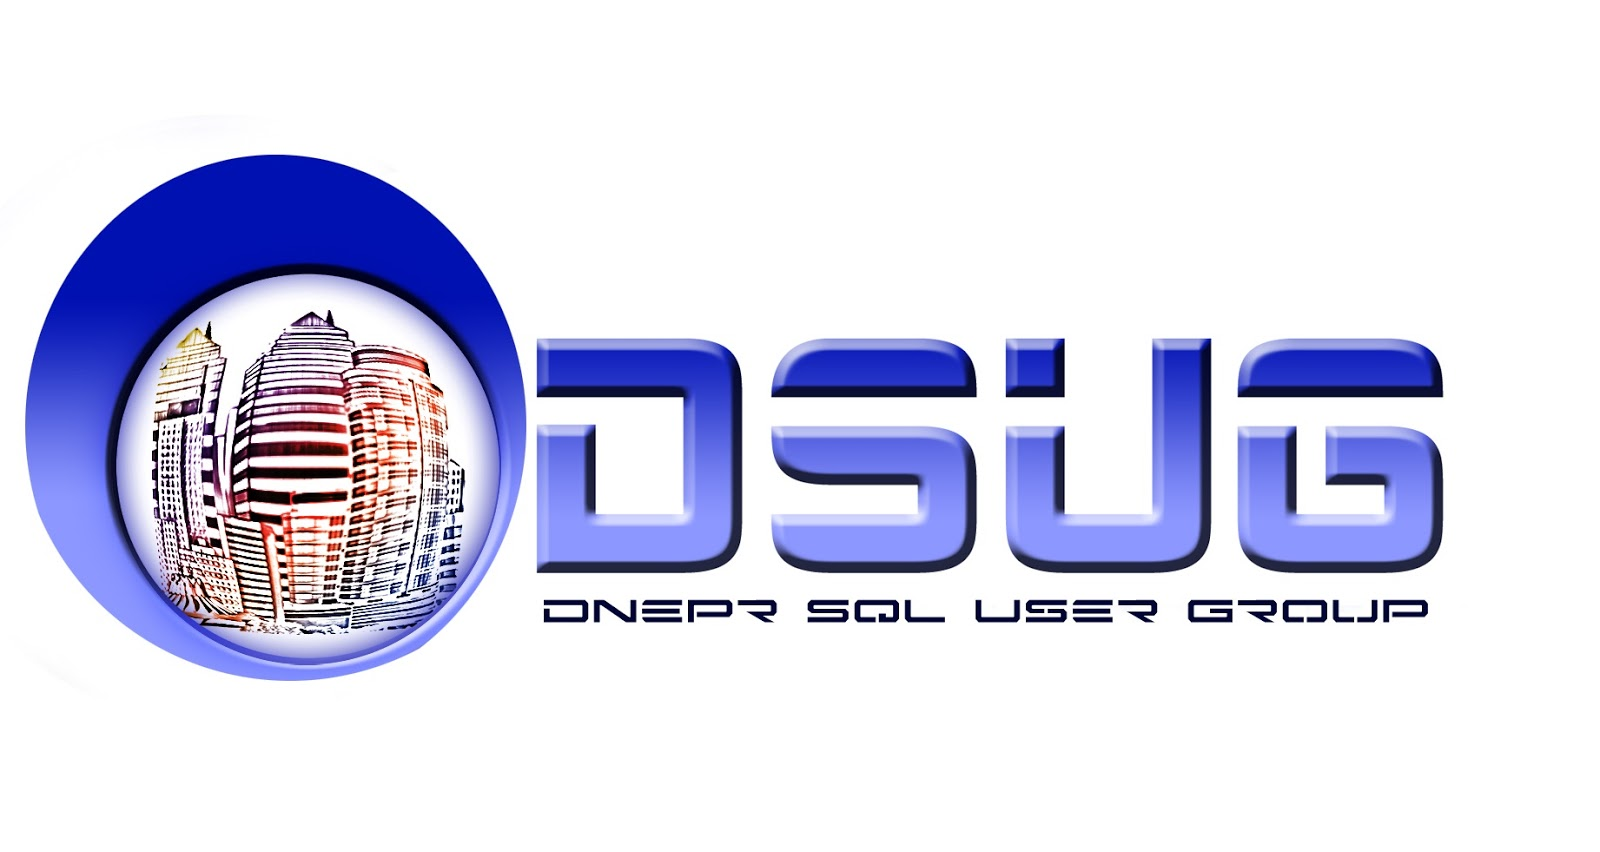 Dnepr SQL User Group